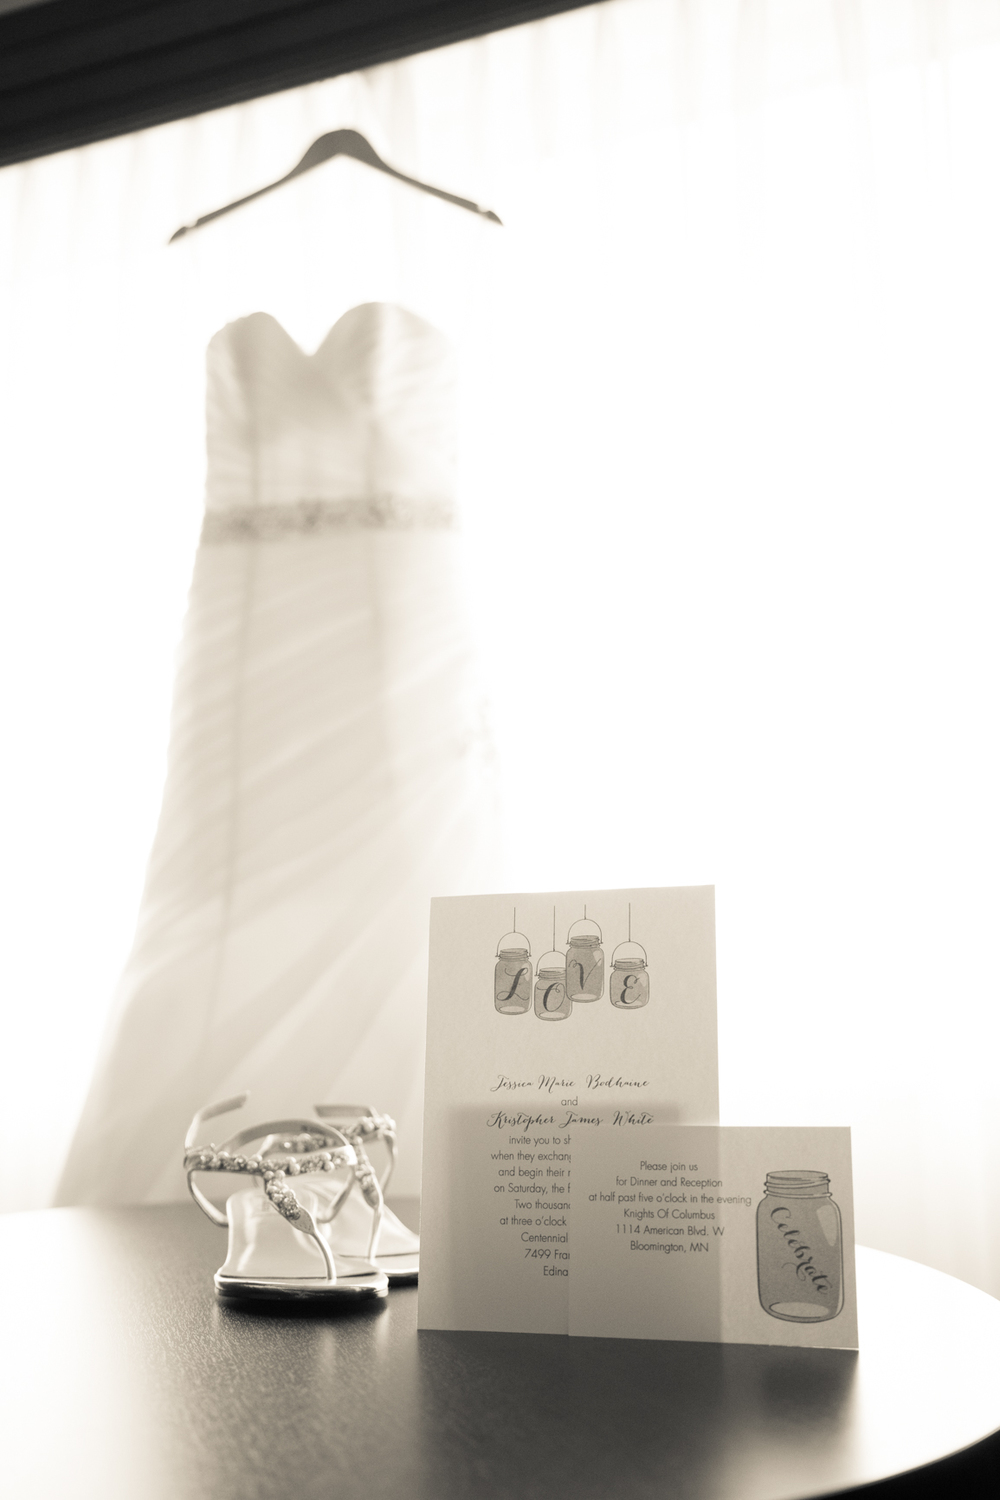 Wedding dress with wedding shoes and wedding invitation wedding day details Minneapolis Minnesota photographer